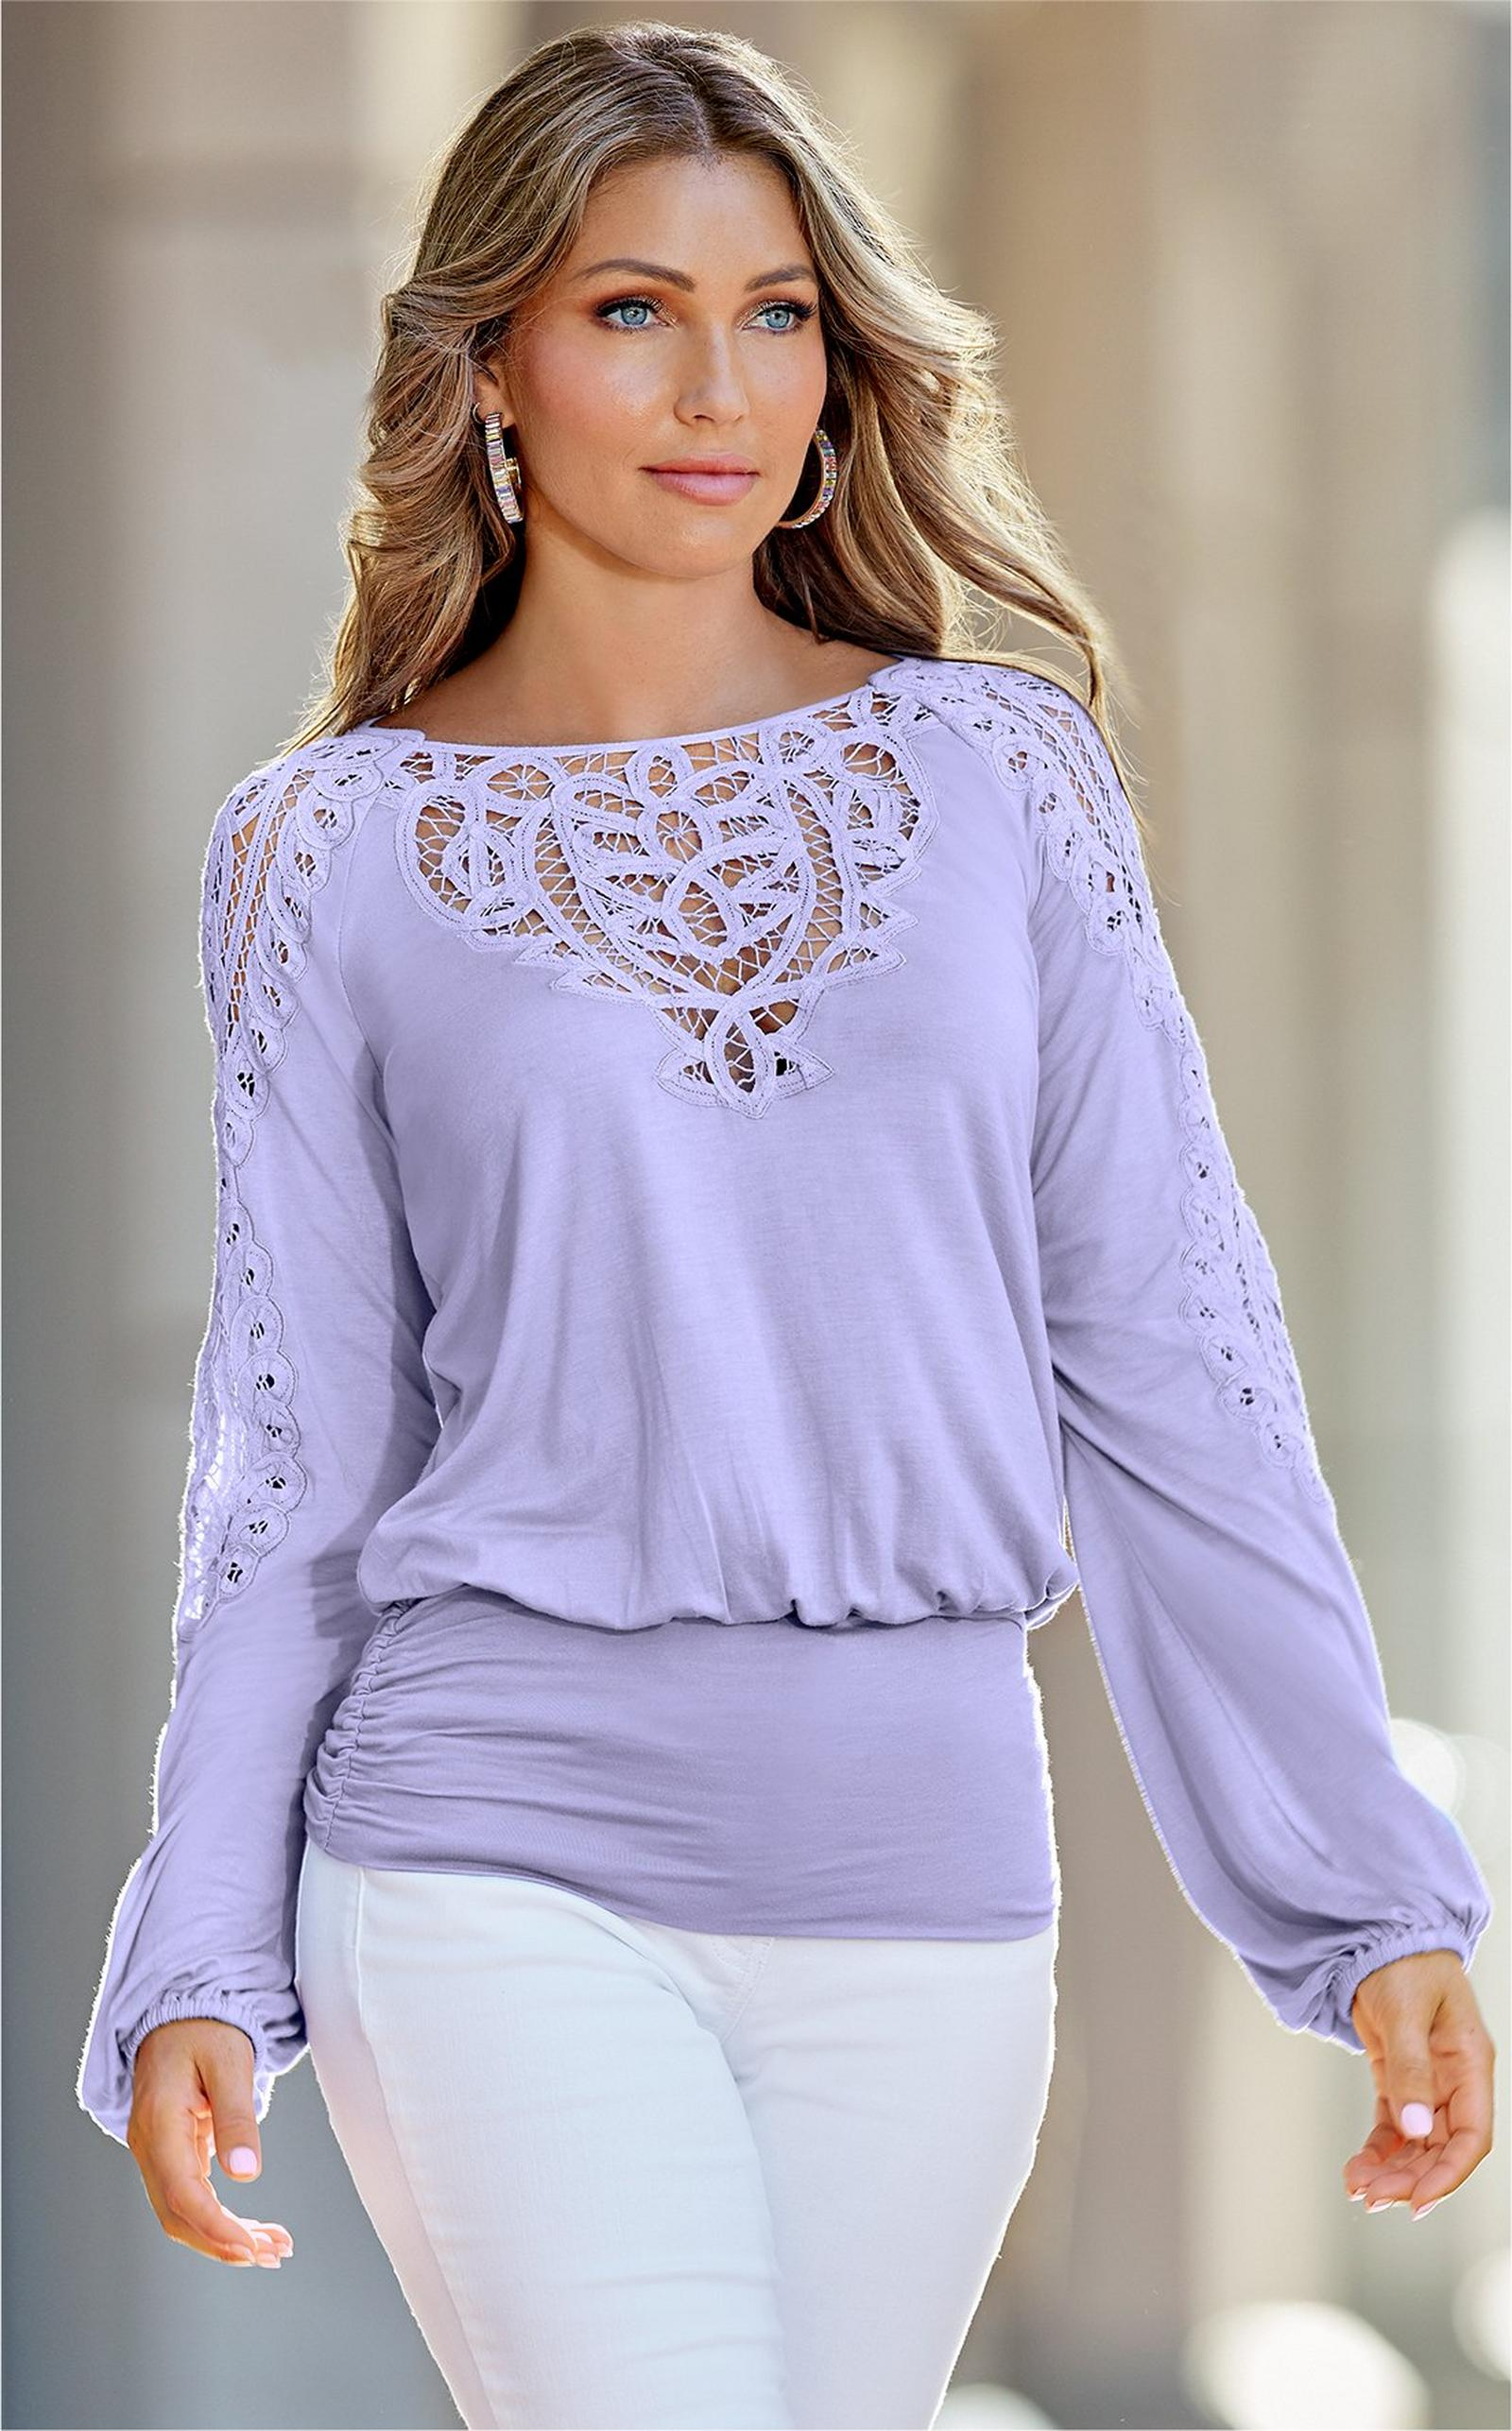 model wearing a pastel purple lace blouson top and white pants.